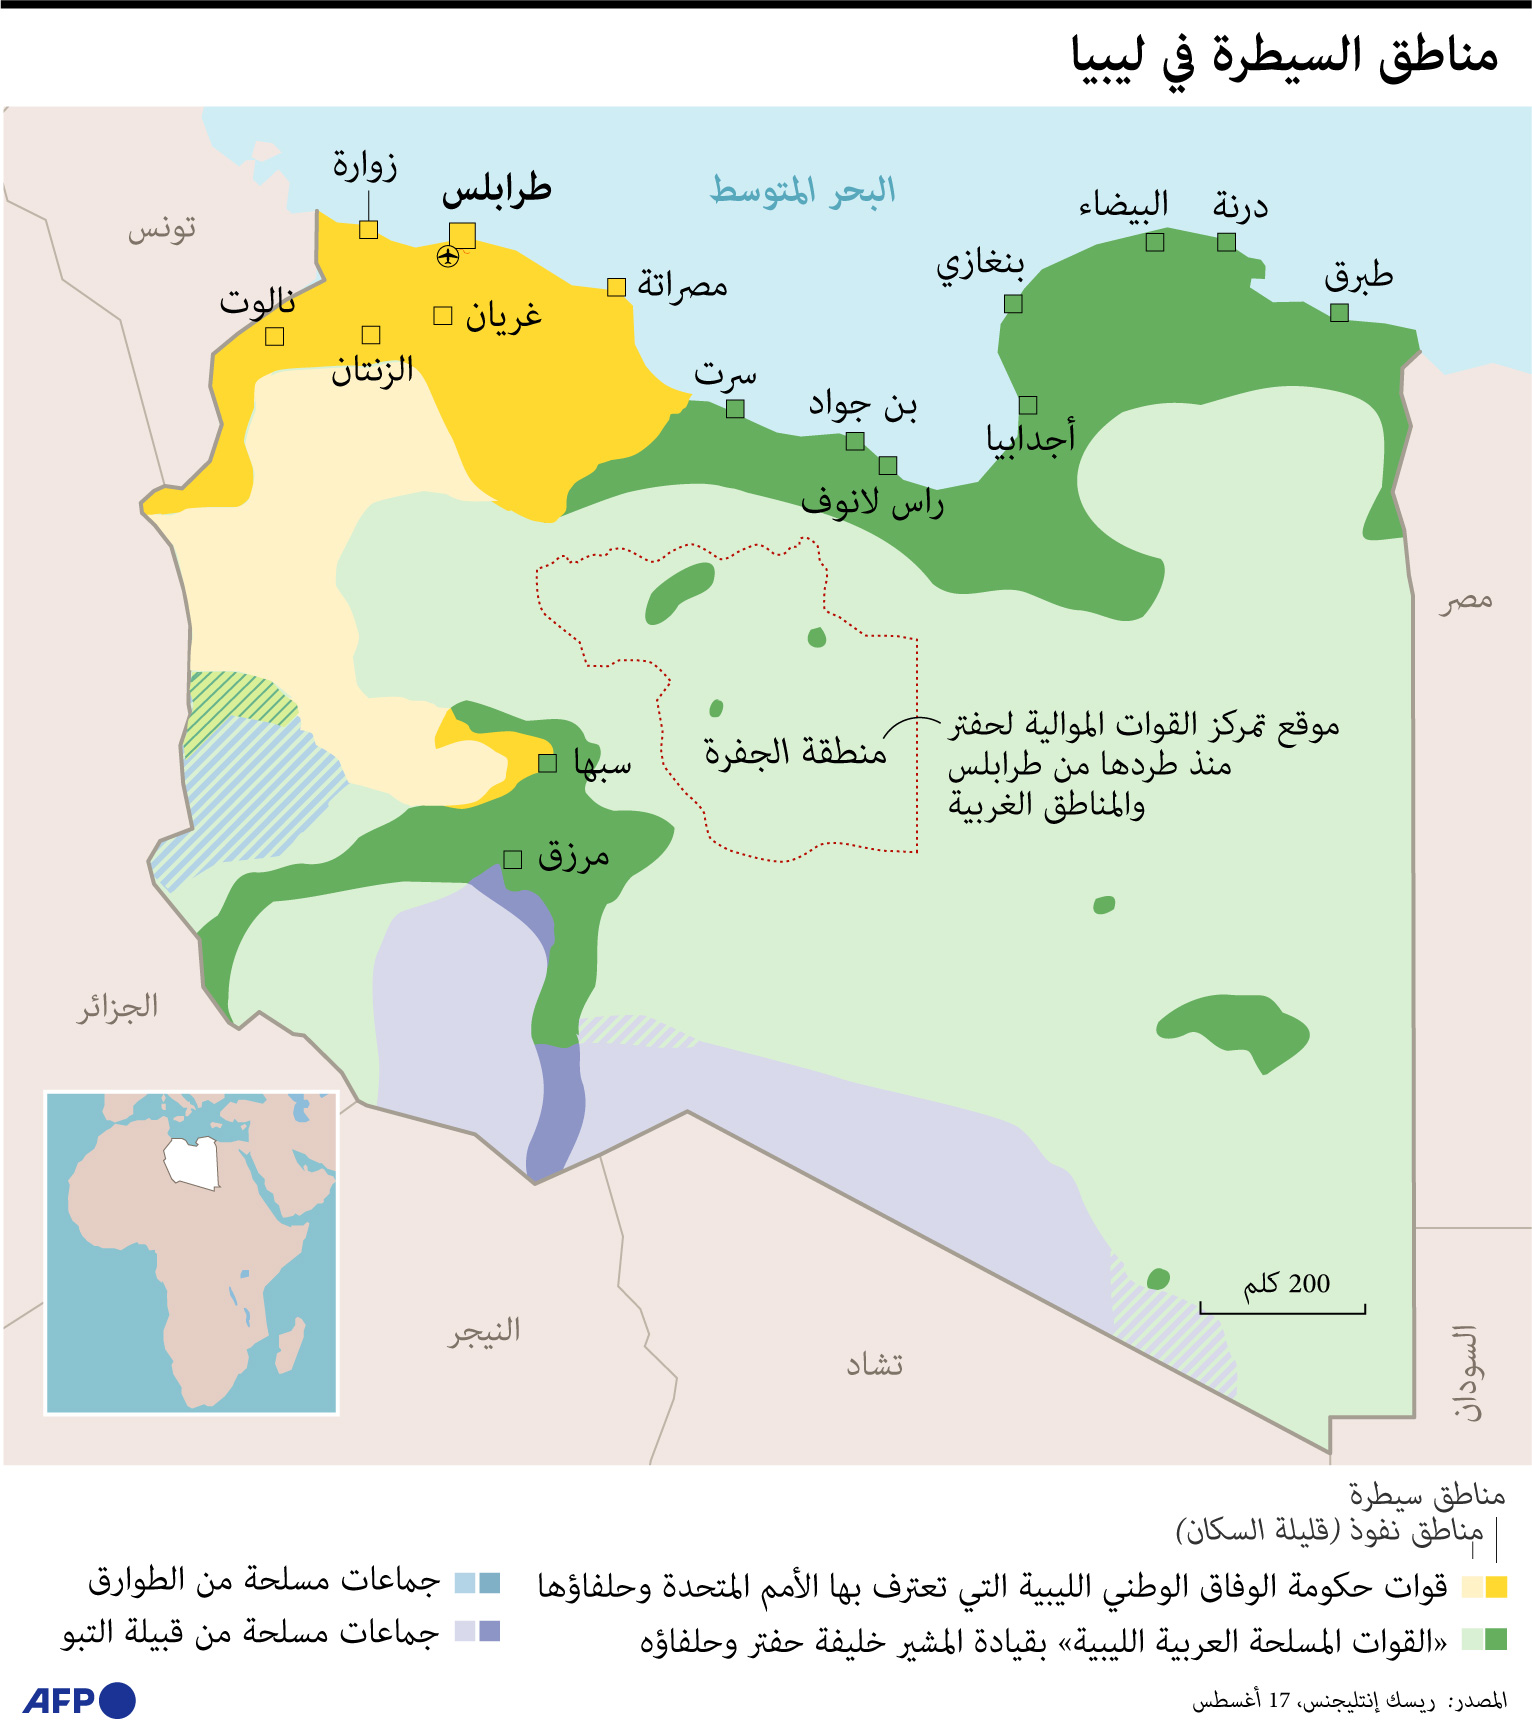 Areas of control in Libya